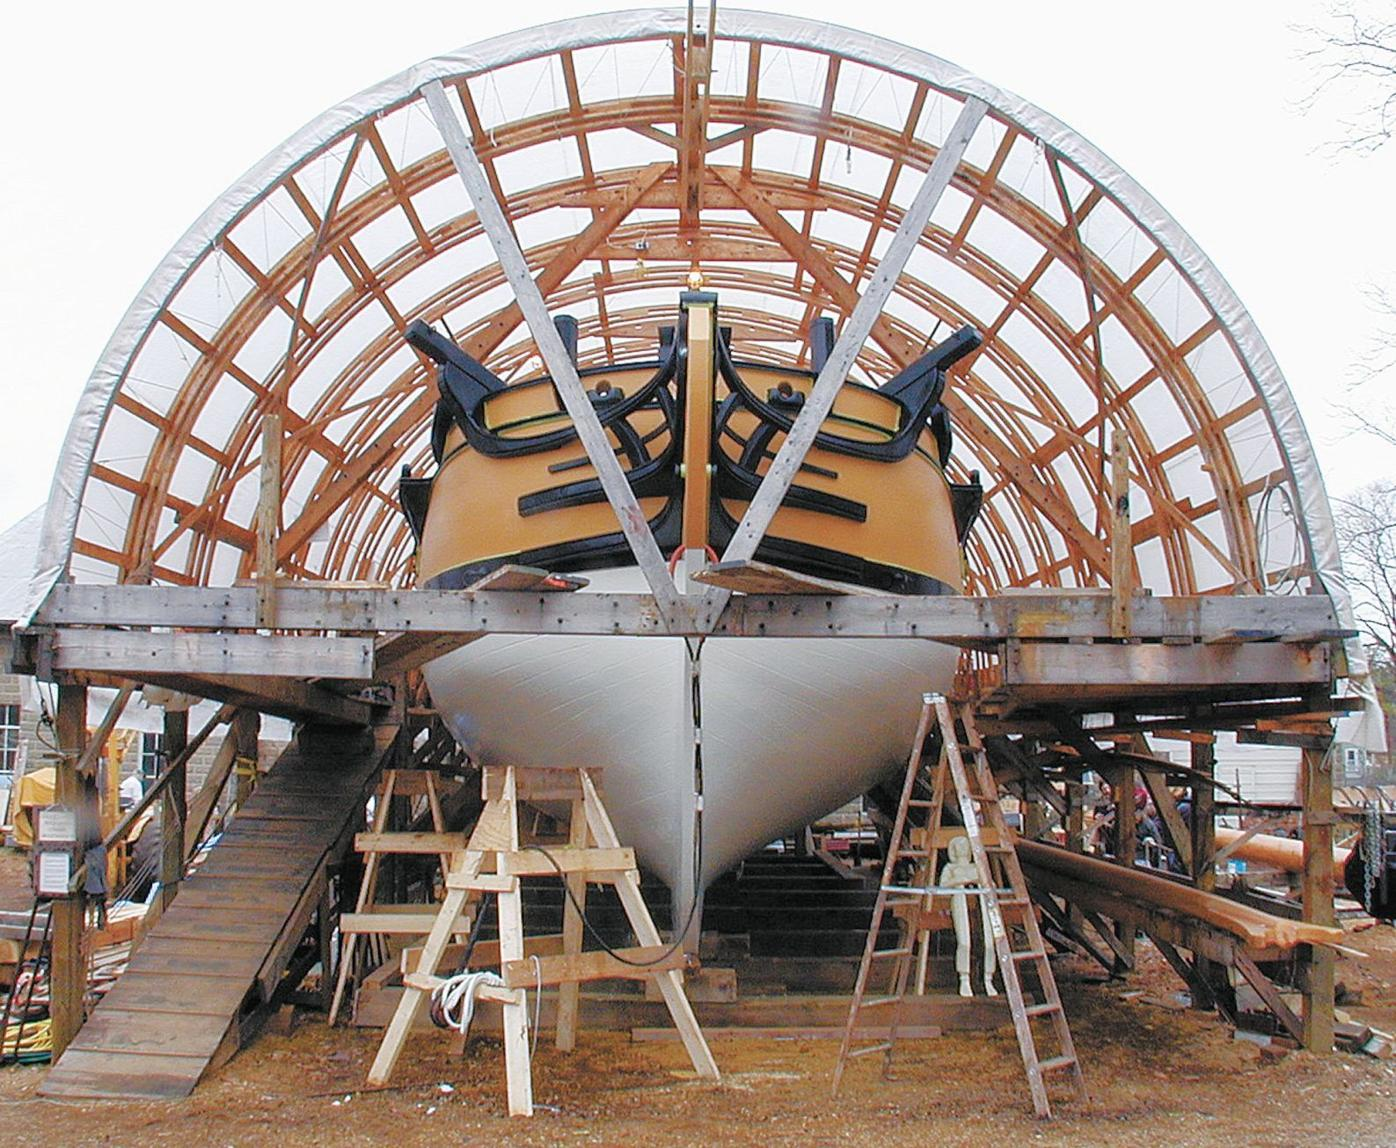 The Sultana celebrates 20 years of sailing and teaching